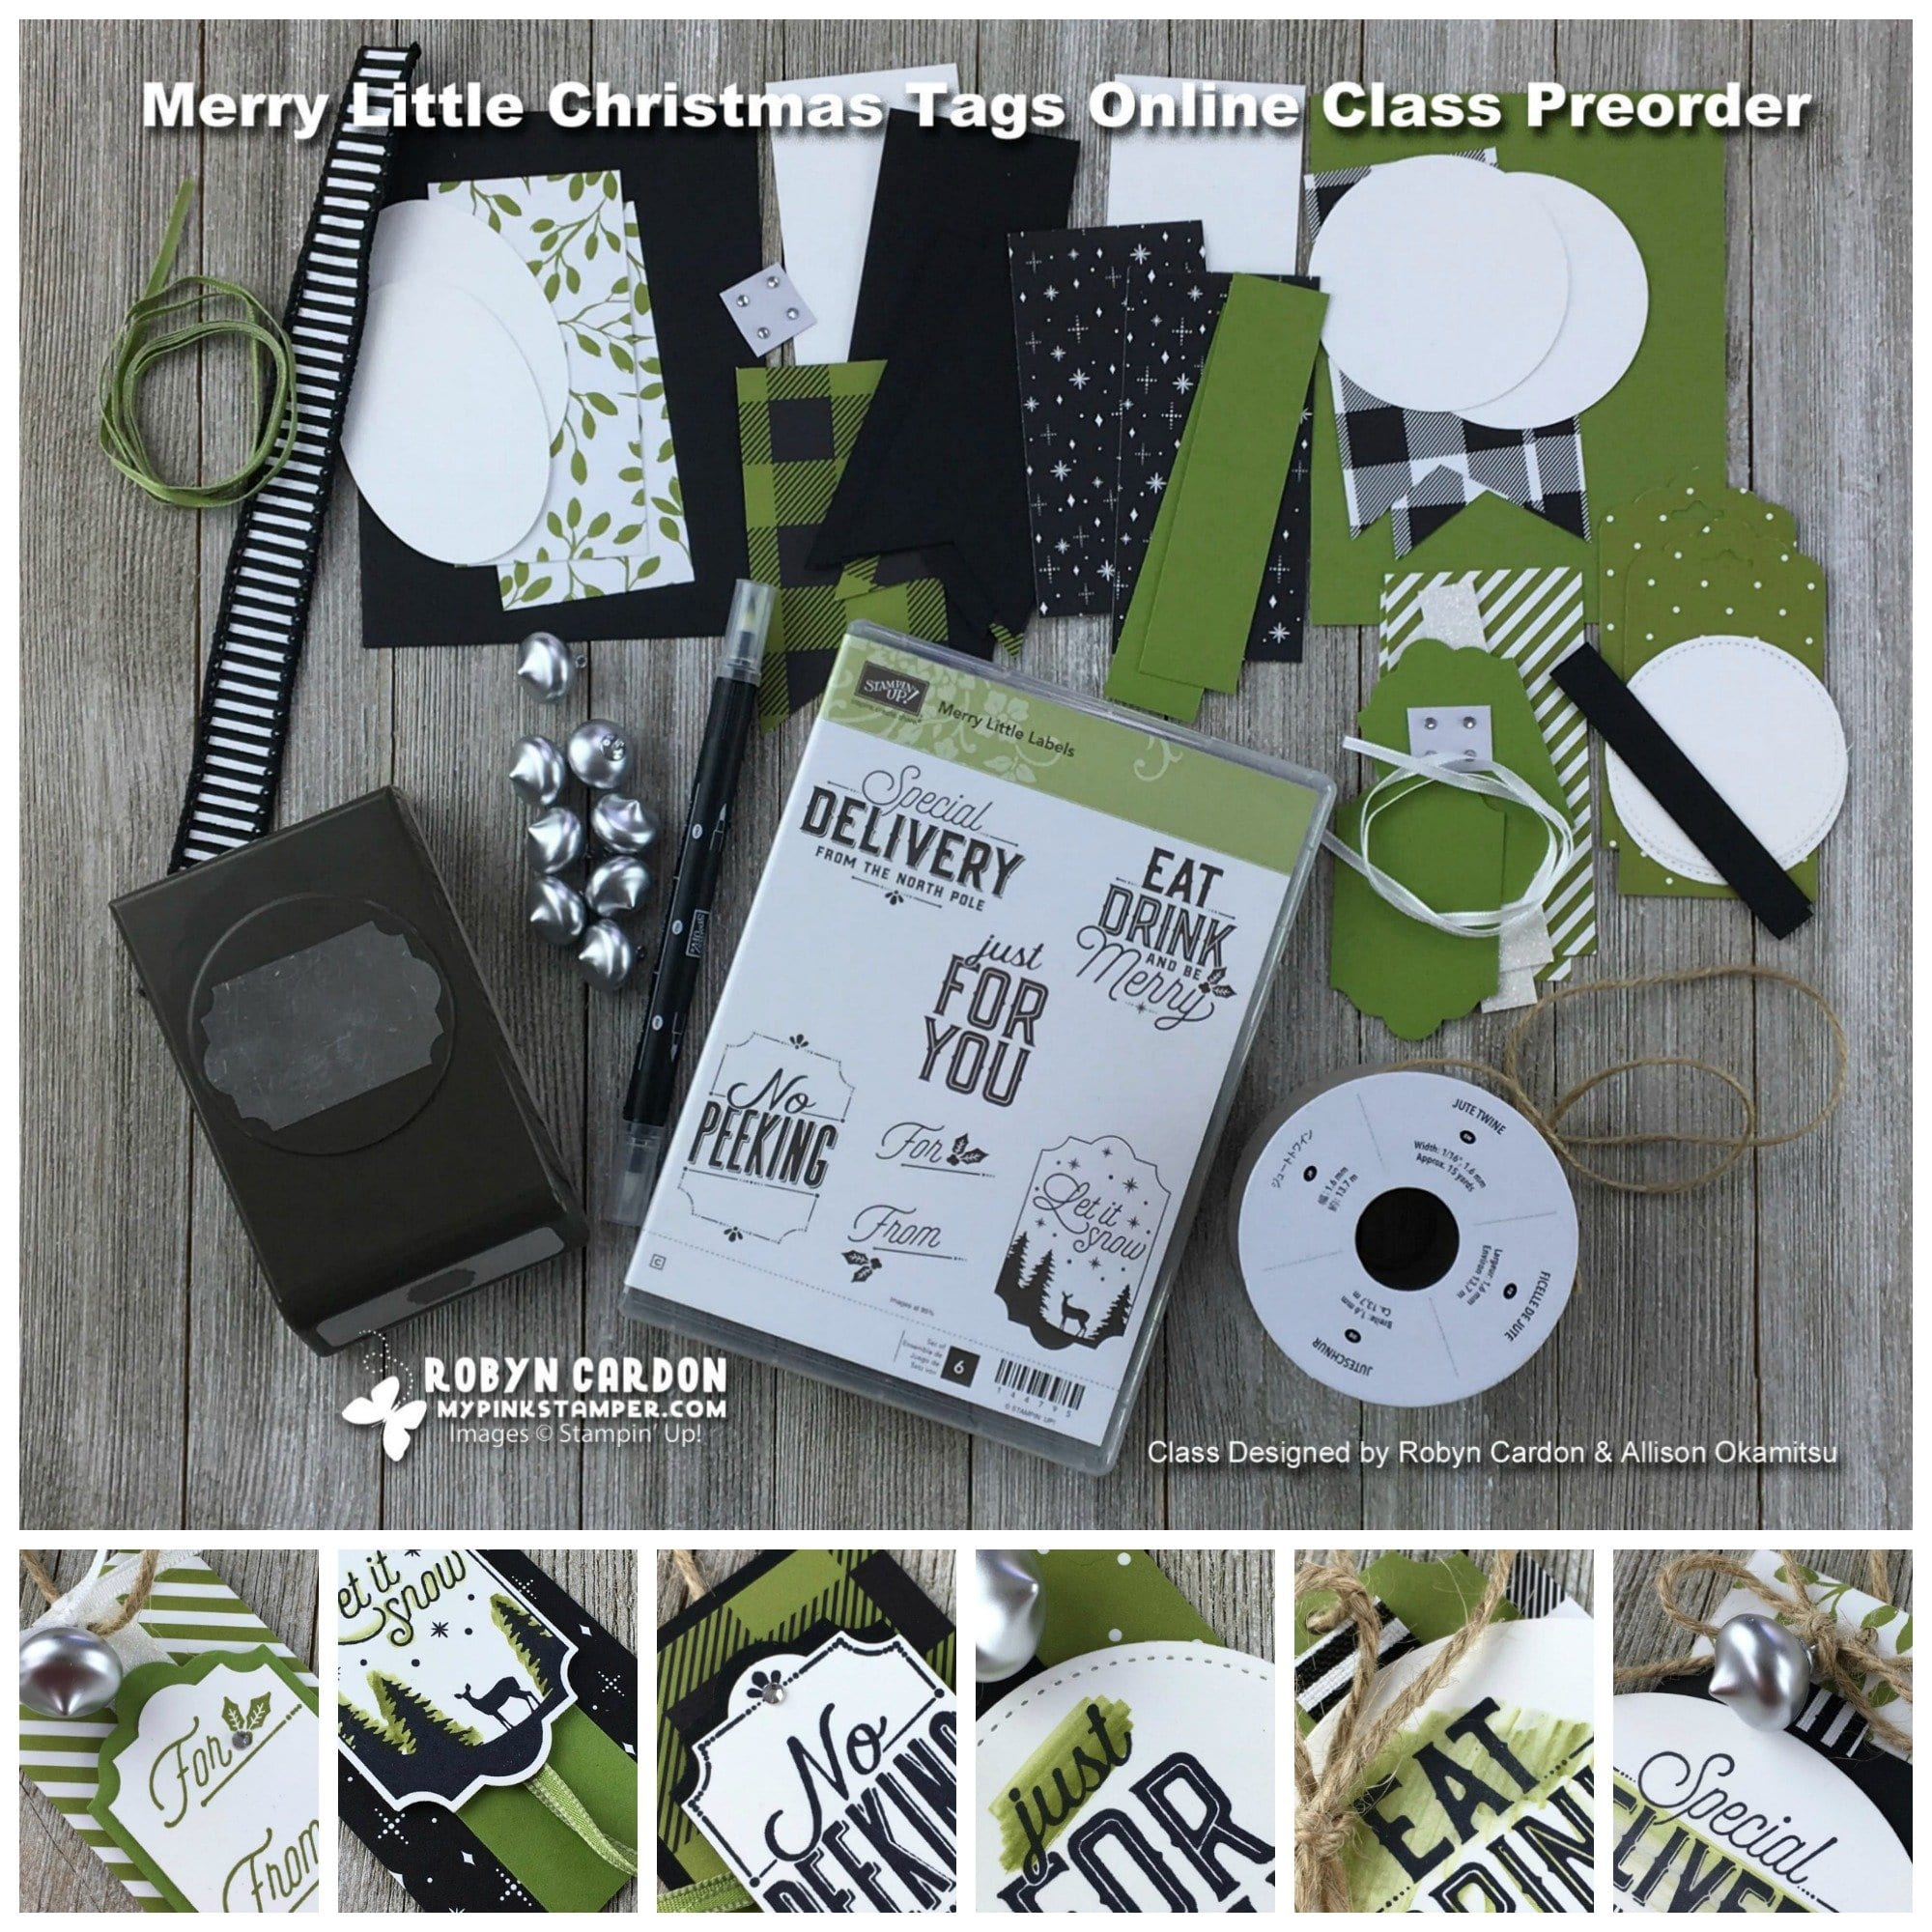 Merry Little Christmas Tags Online Class Preorder